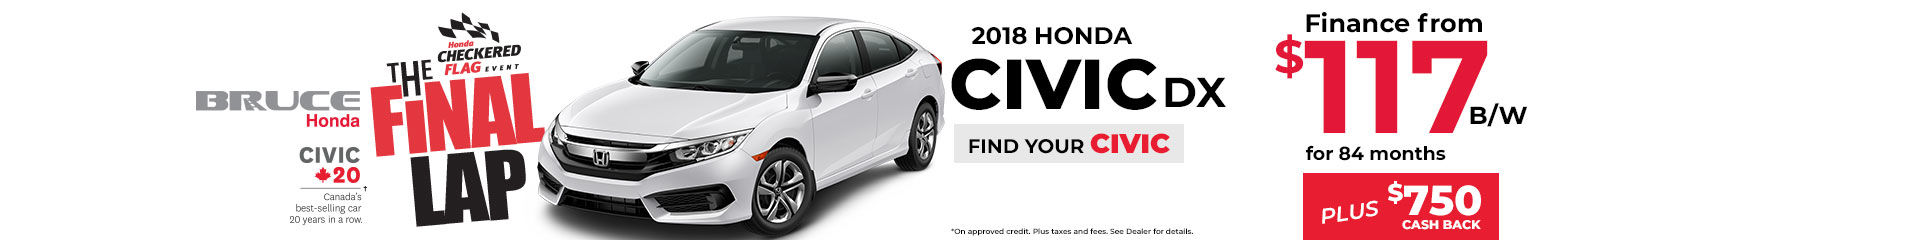 2018-07 Civic DX Finance